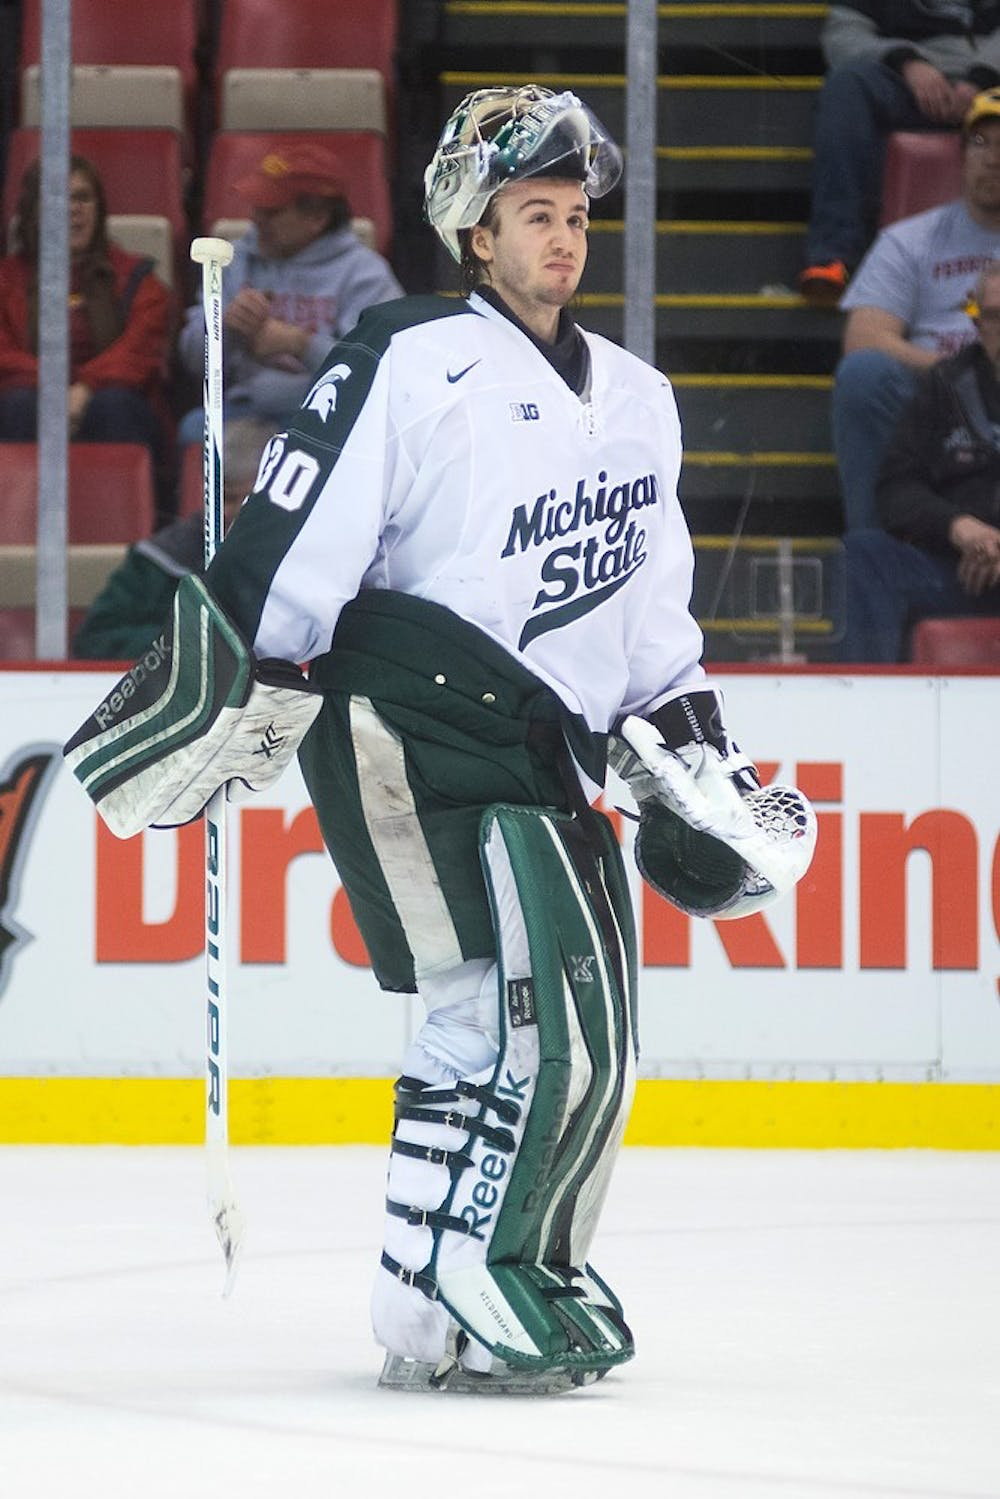 <p>Junior goaltender Jake Hildebrand reacts to a Spartan goal on an empty Ferris State net Dec. 28, 2014, during the 50th Great Lakes Invitational at Joe Louis Arena in Detroit. The Spartans defeated the Bulldogs, 2-0. Danyelle Morrow/The State News</p>